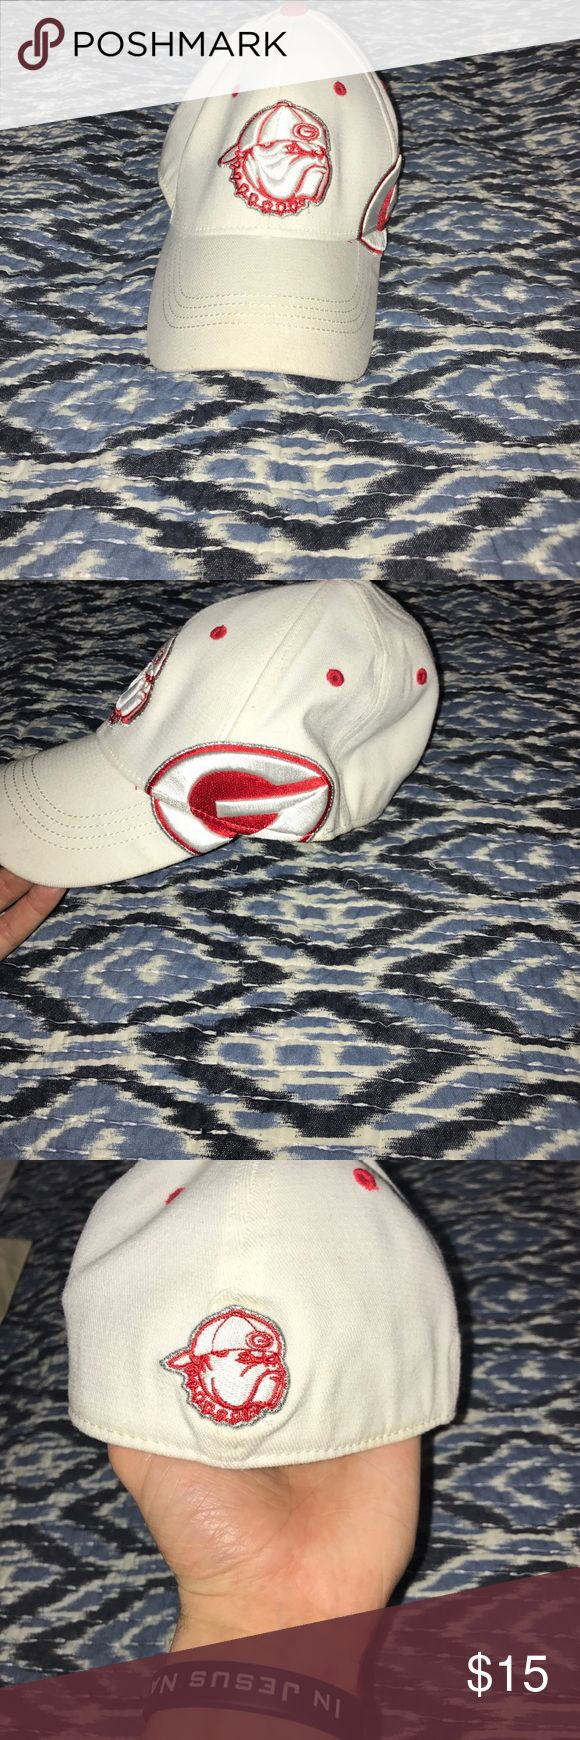 Georgia Bulldogs Hat Georgia Bulldogs hat, good condition. Top of the World Accessories Hats